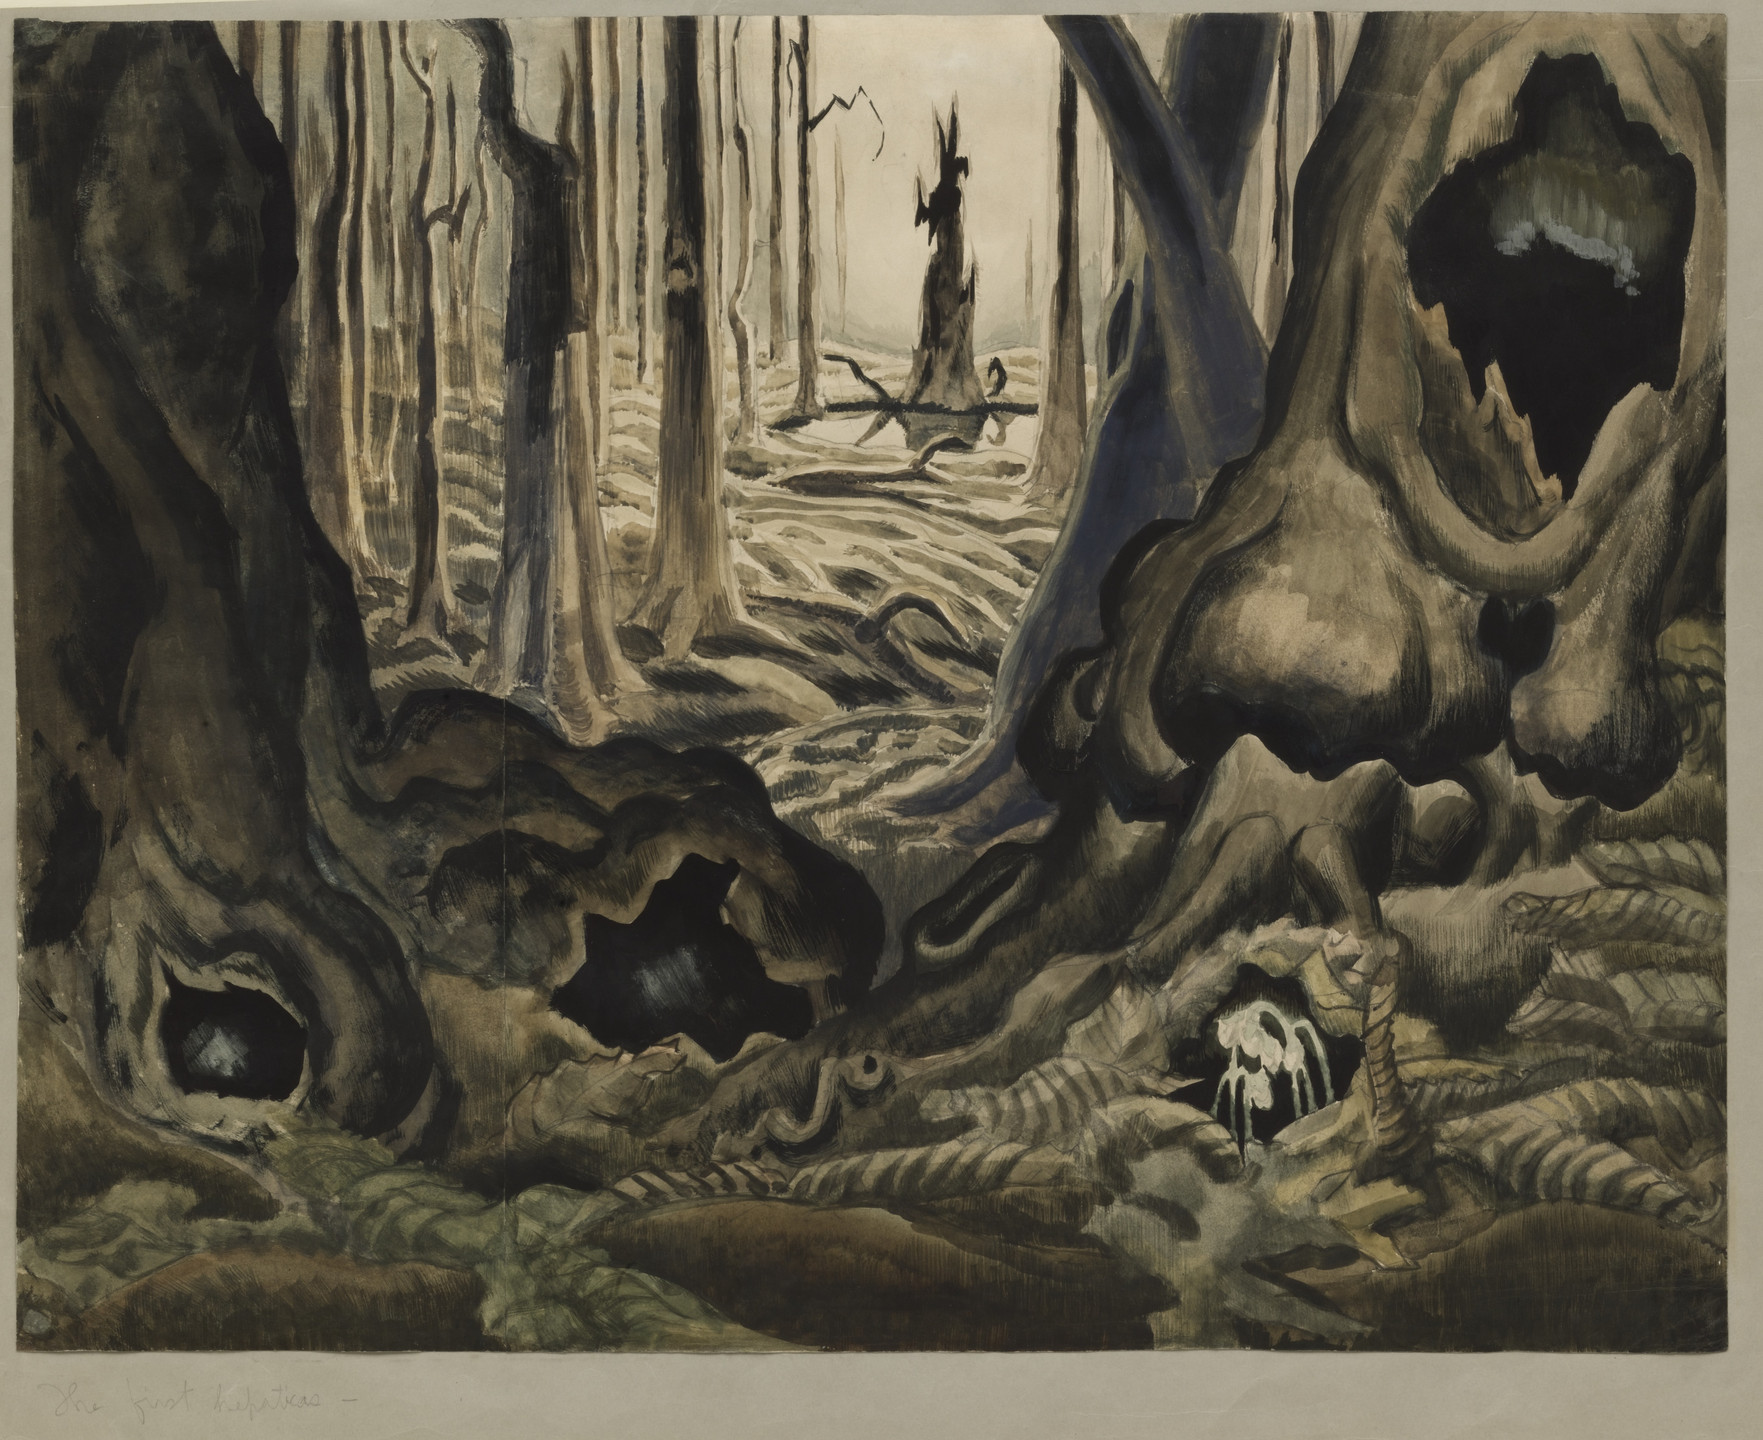 Charles Burchfield. The First Hepaticas. (1917-18)